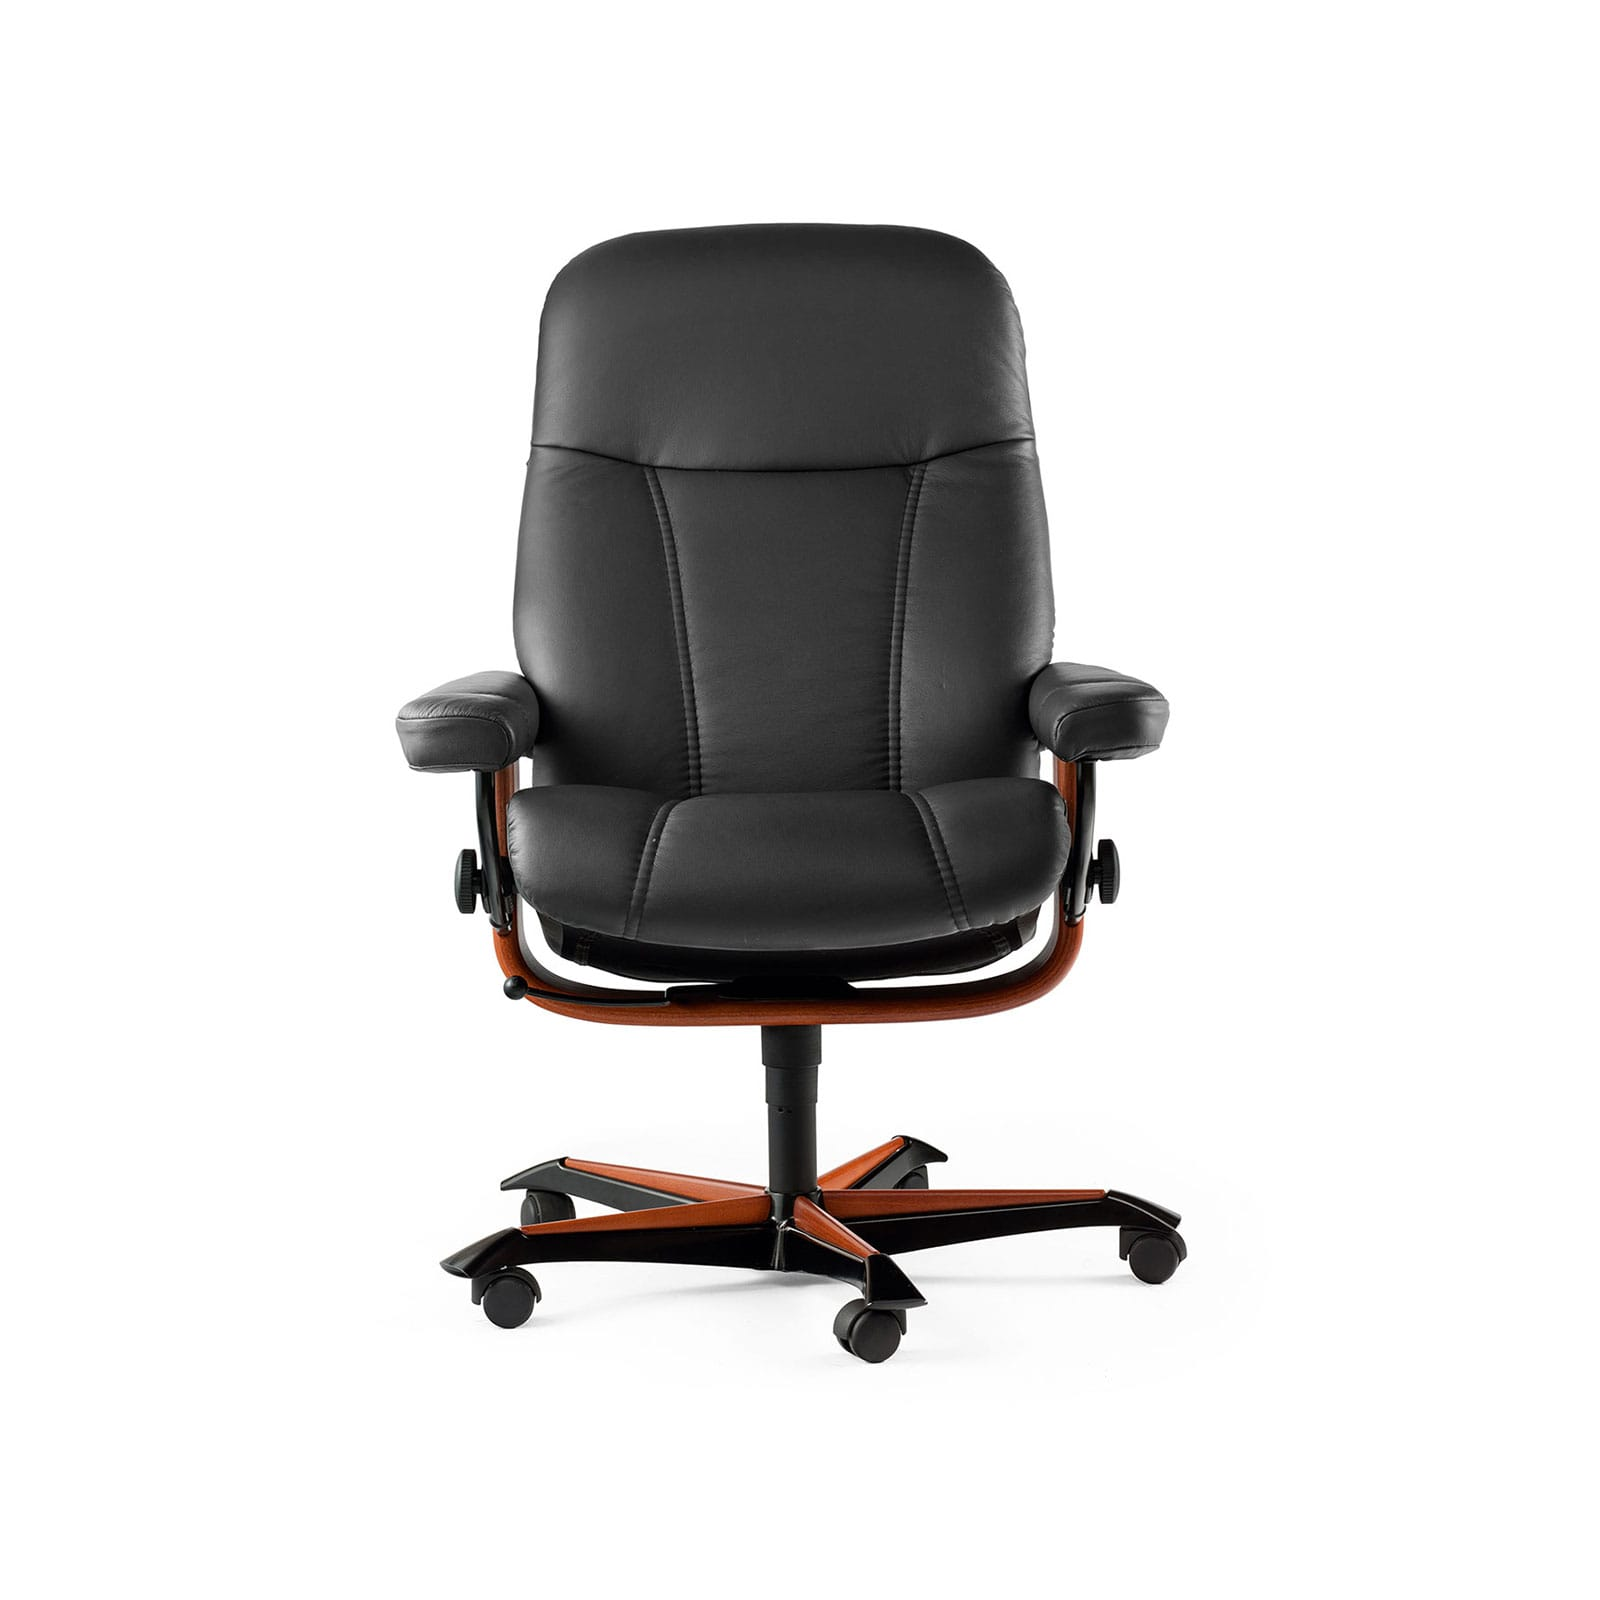 Stressless Bürostuhl Stessless Sessel Consul Home Office M Black Braun